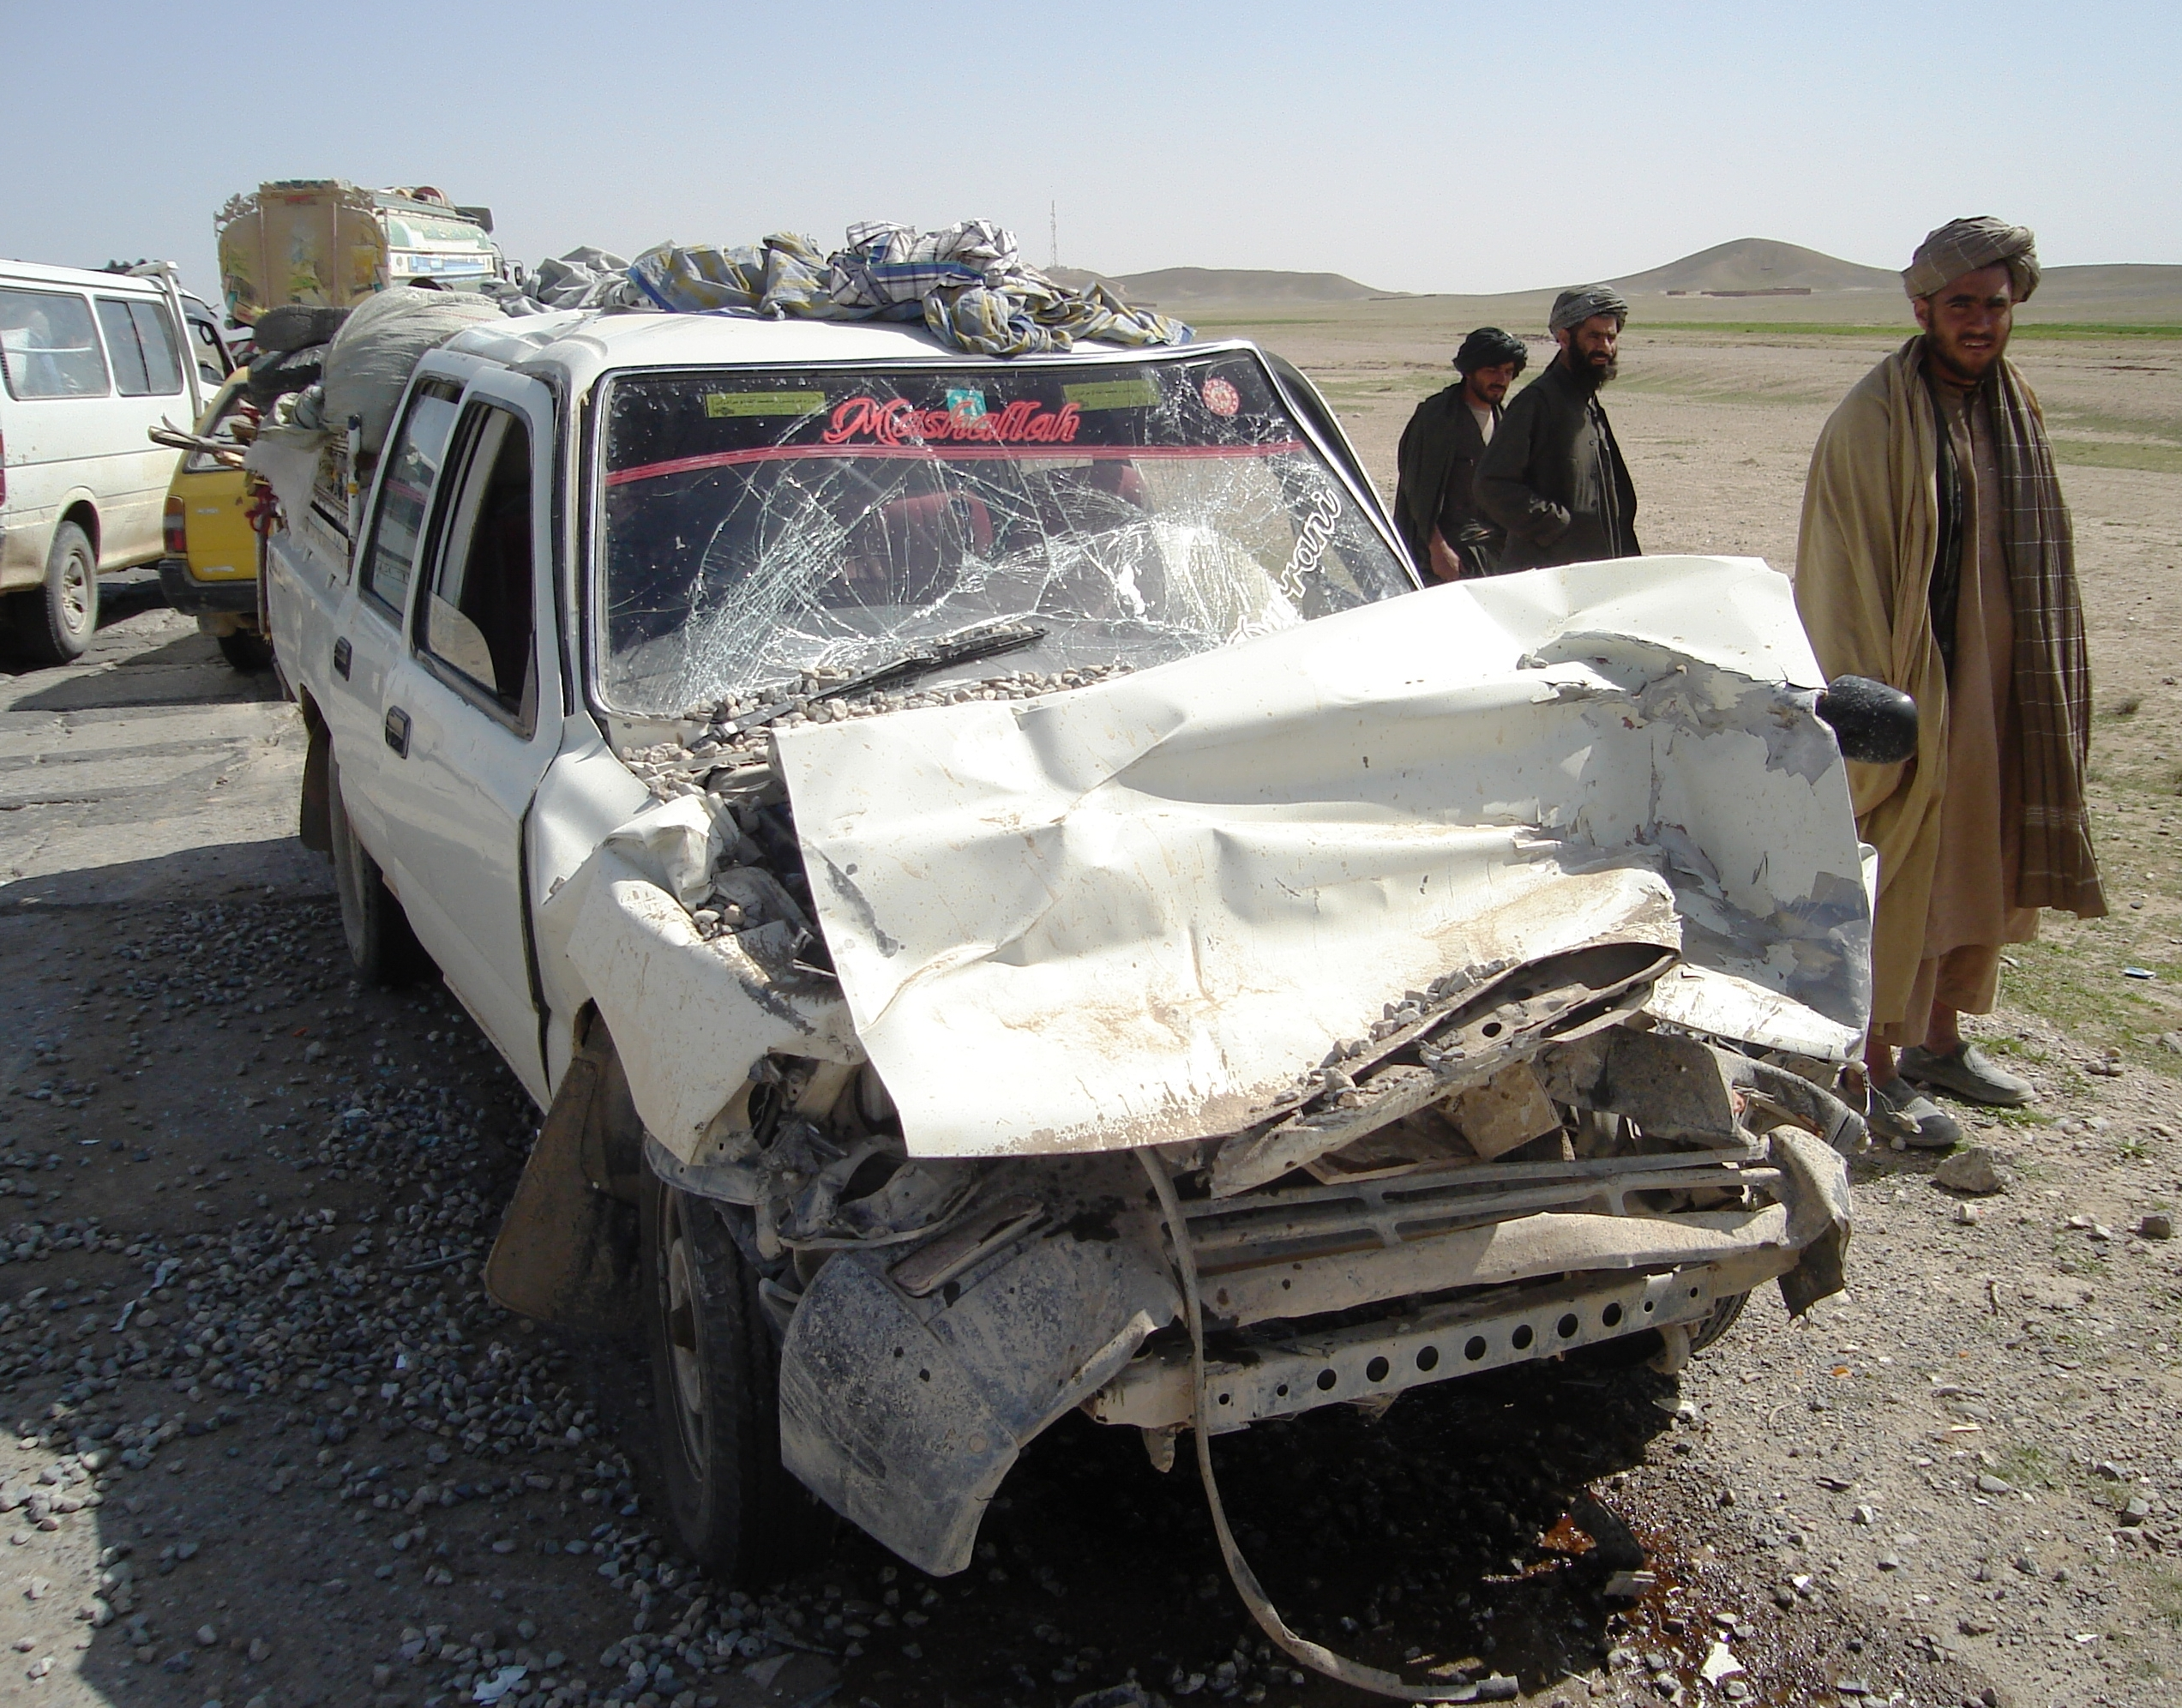 Roadside bombs and mines inflict heavy harms on civilians in Afghanistan